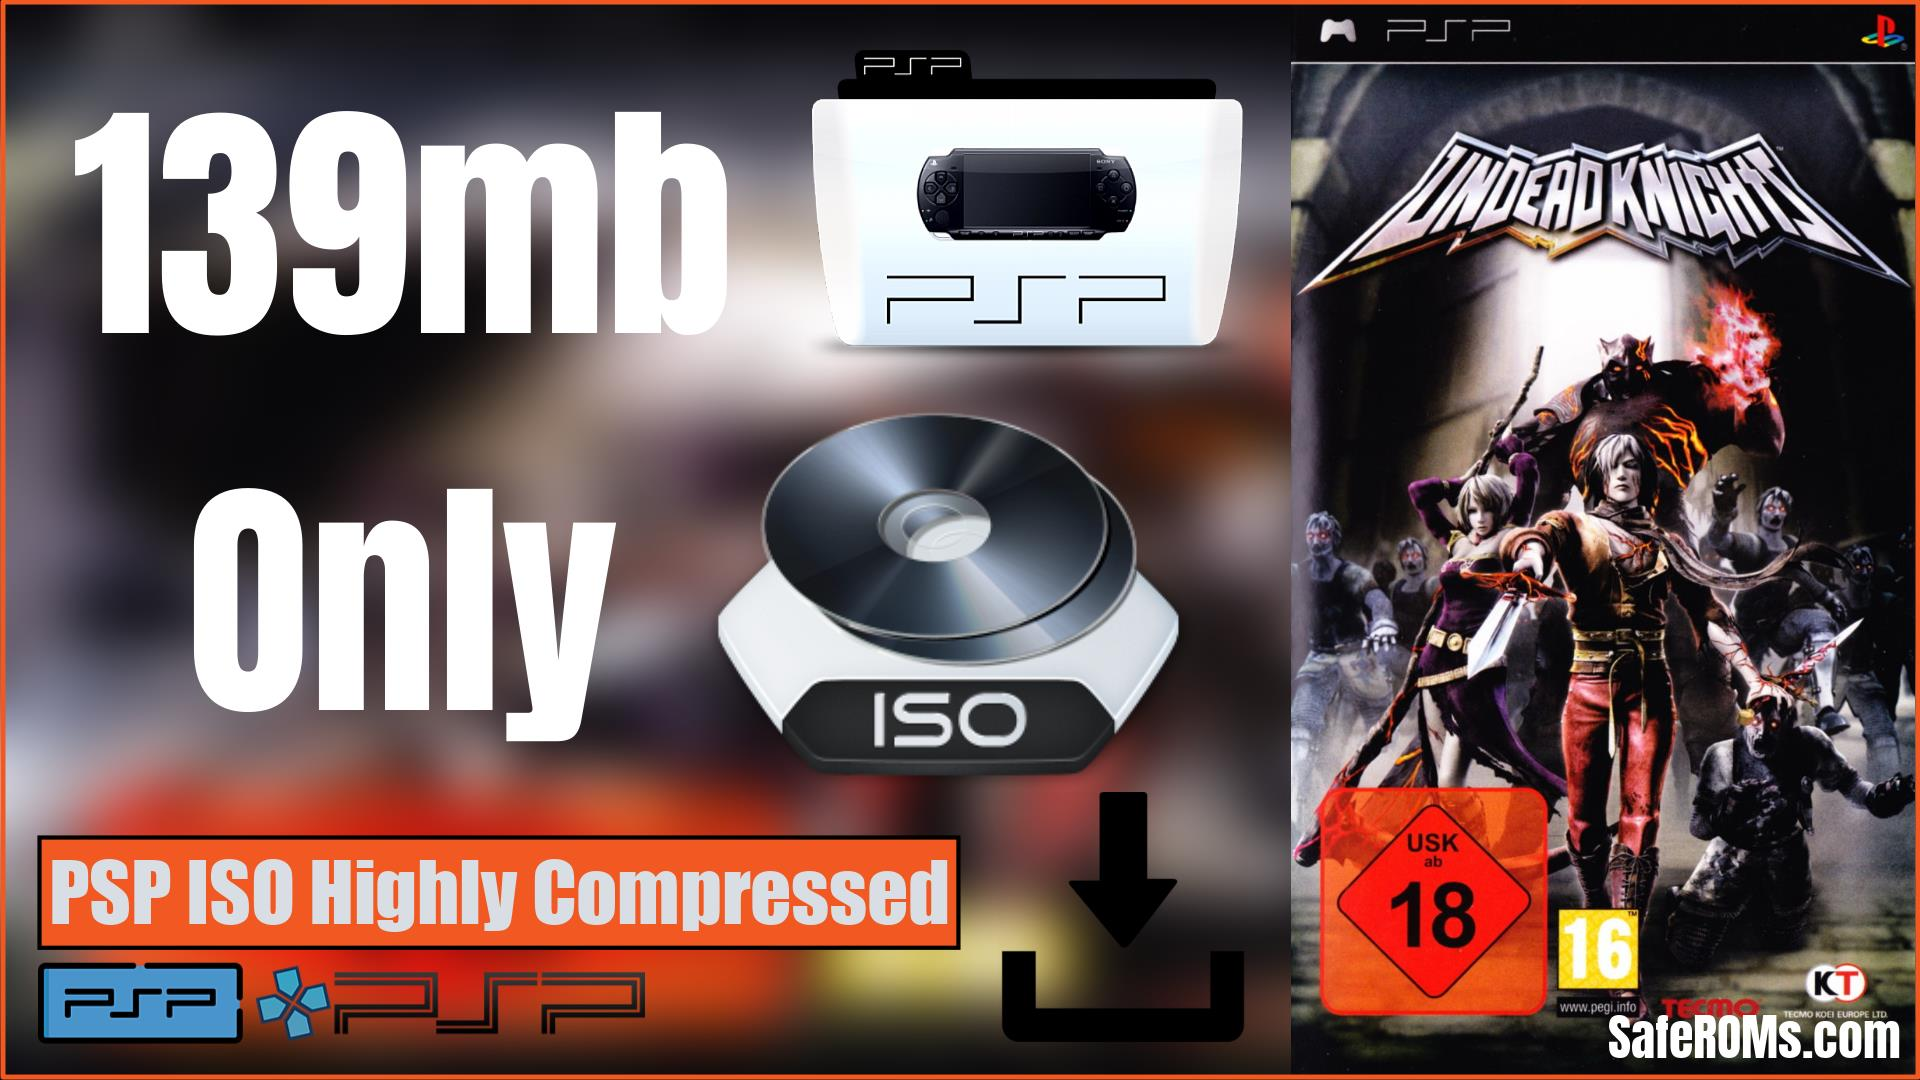 Undead Knights PSP ISO Highly Compressed Download